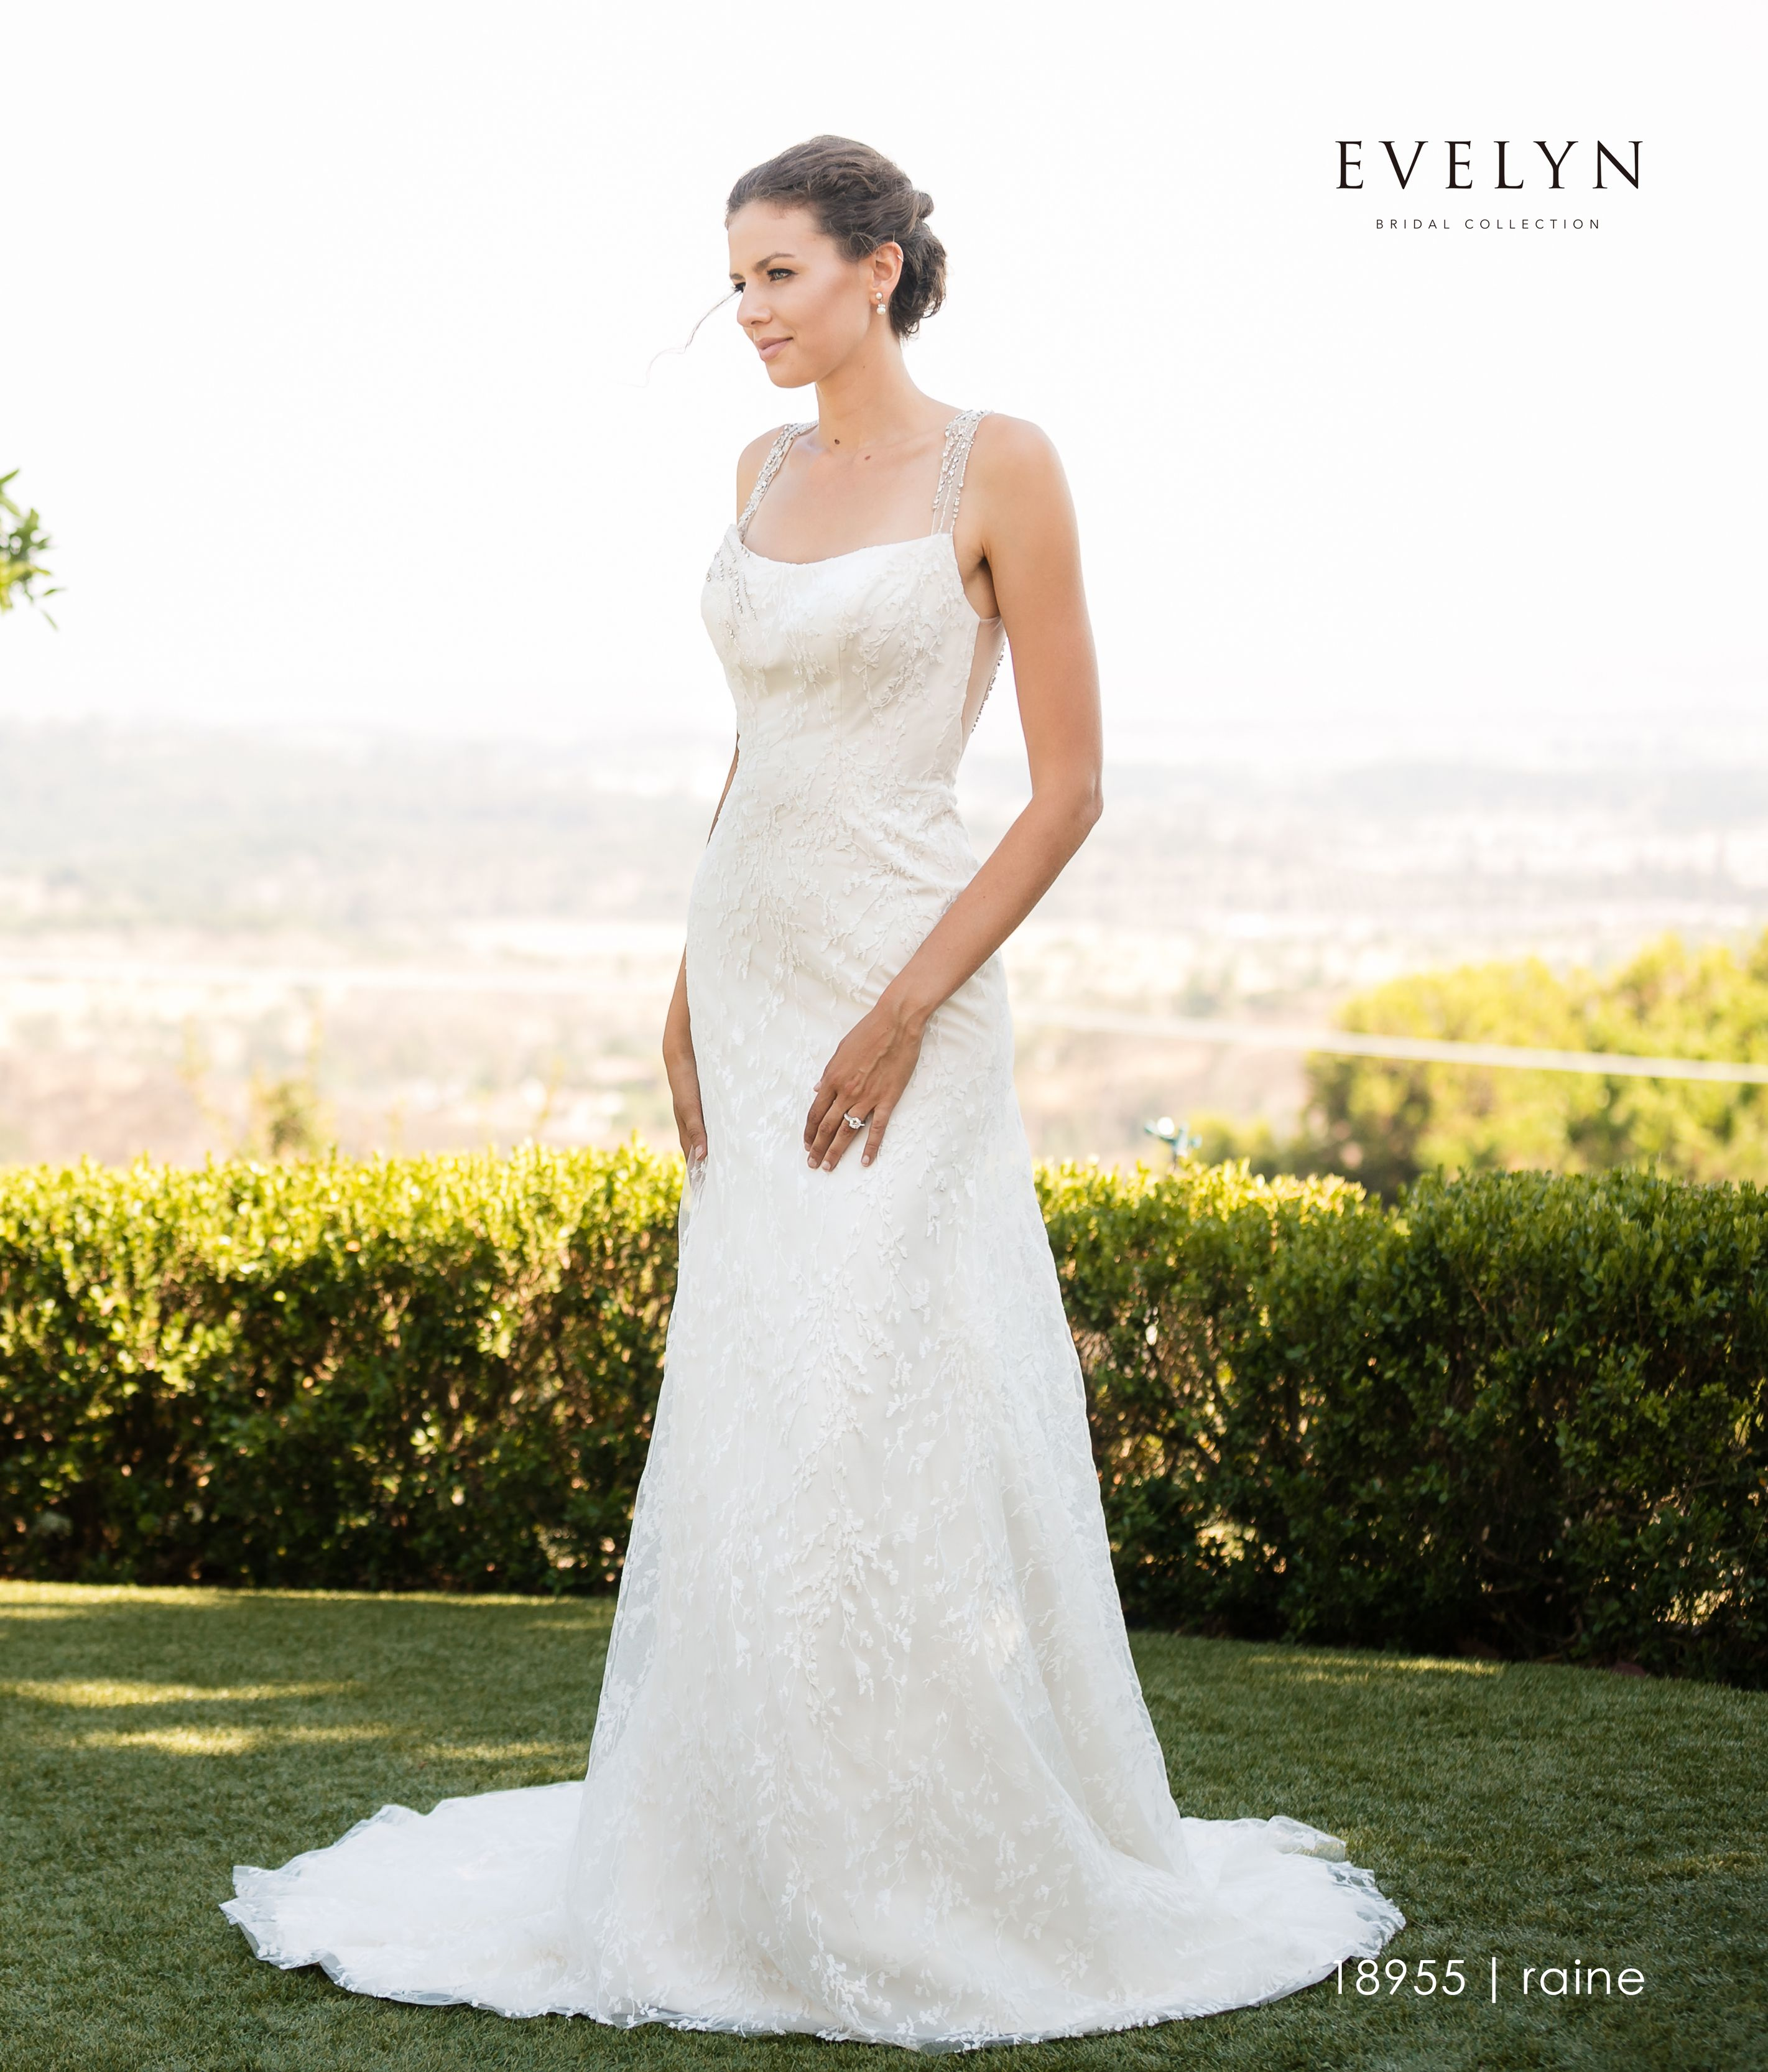 d644f1a6 Evelyn Bridal | Raine 18955 Elegant allover lace sheath gown with crystal  beaded back. This stunning dress features a slight curve neckline, crystal  beaded ...